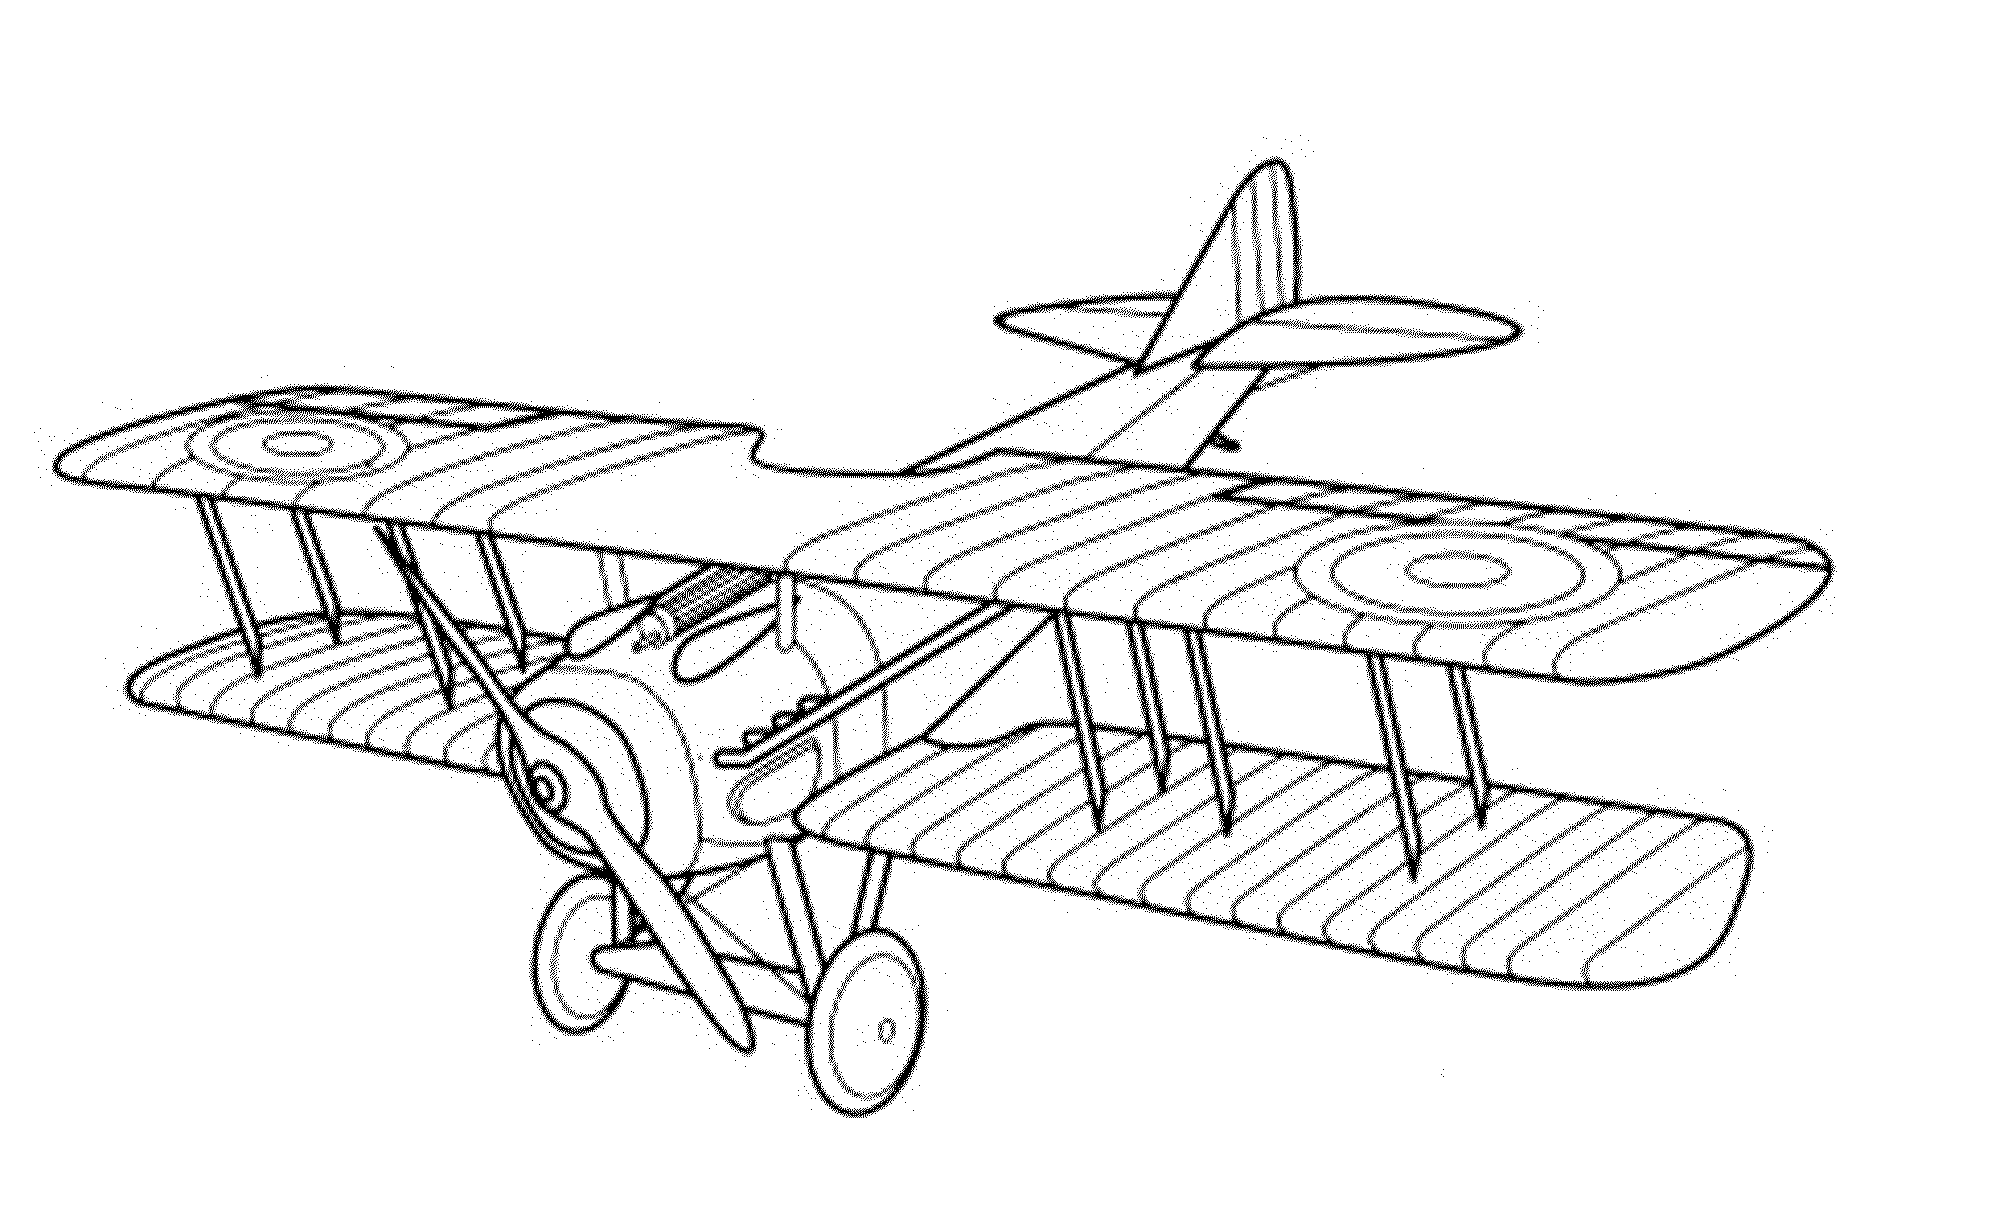 planes printable coloring pages jet airplane coloring page free printable coloring pages printable coloring planes pages